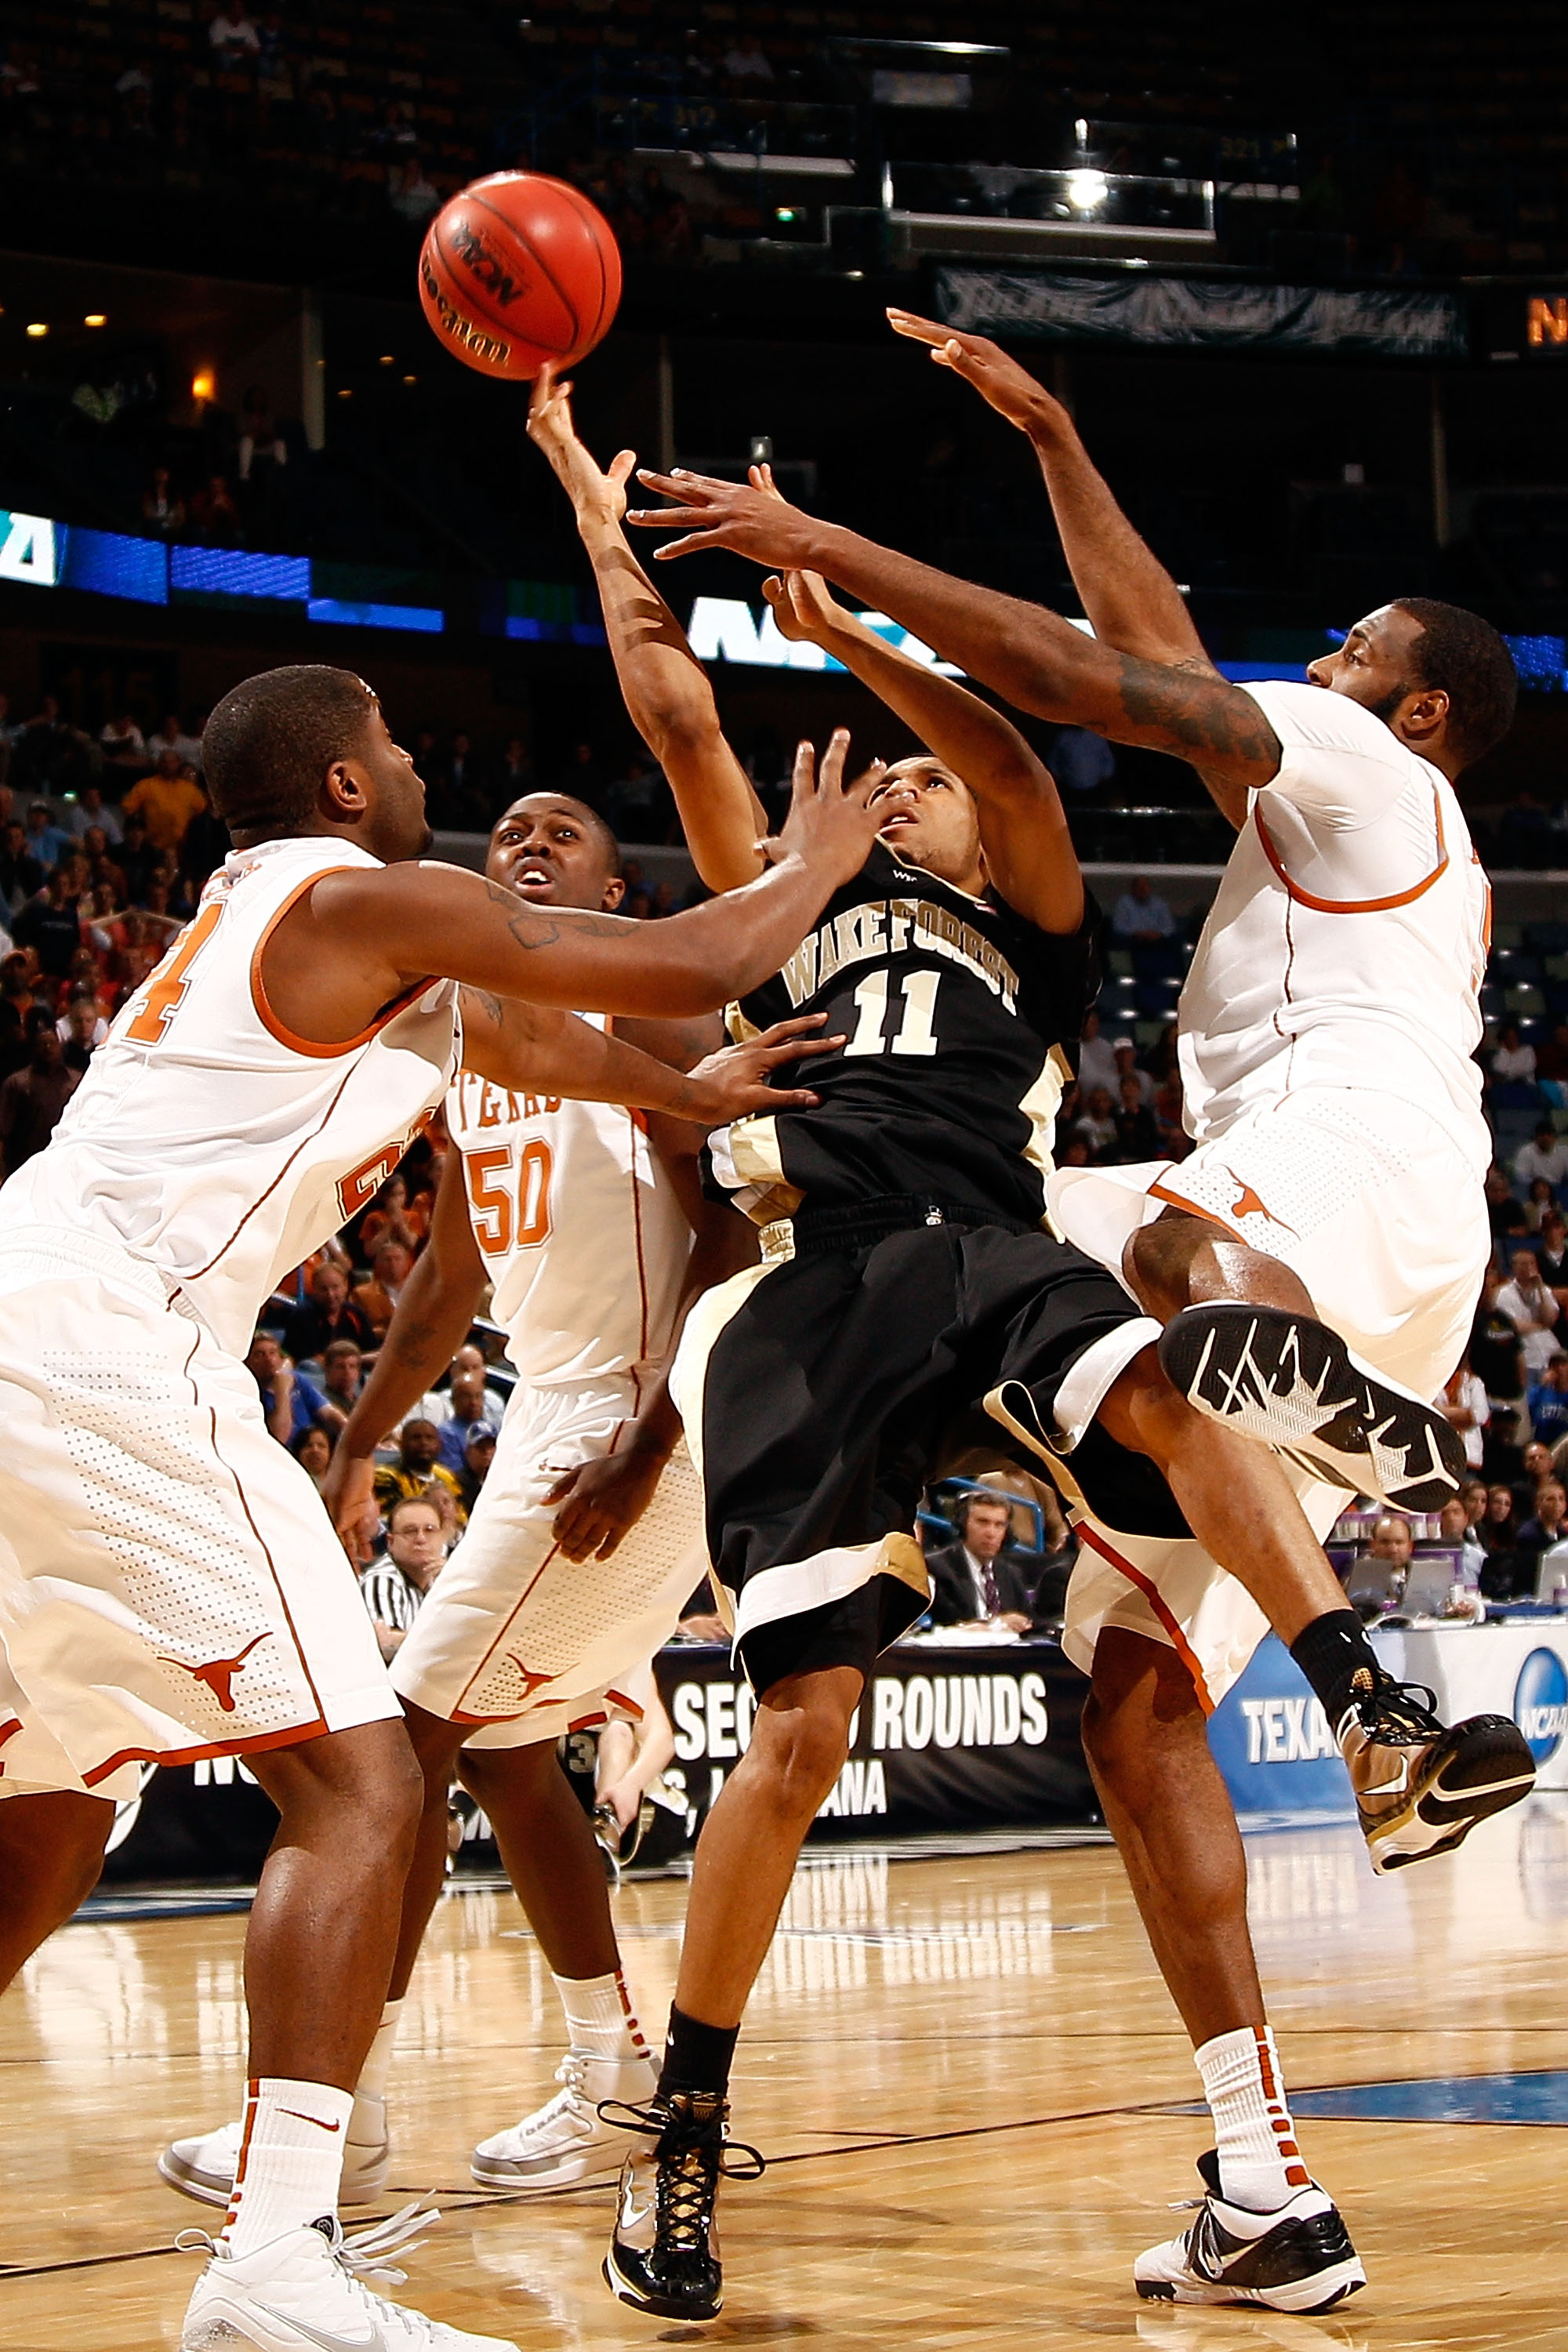 NEW ORLEANS - MARCH 18:  C.J. Harris #11 of the Wake Forest Demon Deacons shoots the ball Justin Mason #24 of the Texas Longhorns during the first round of the 2010 NCAA men�s basketball tournament at the New Orleans Arena on March 18, 2010 in New Orleans